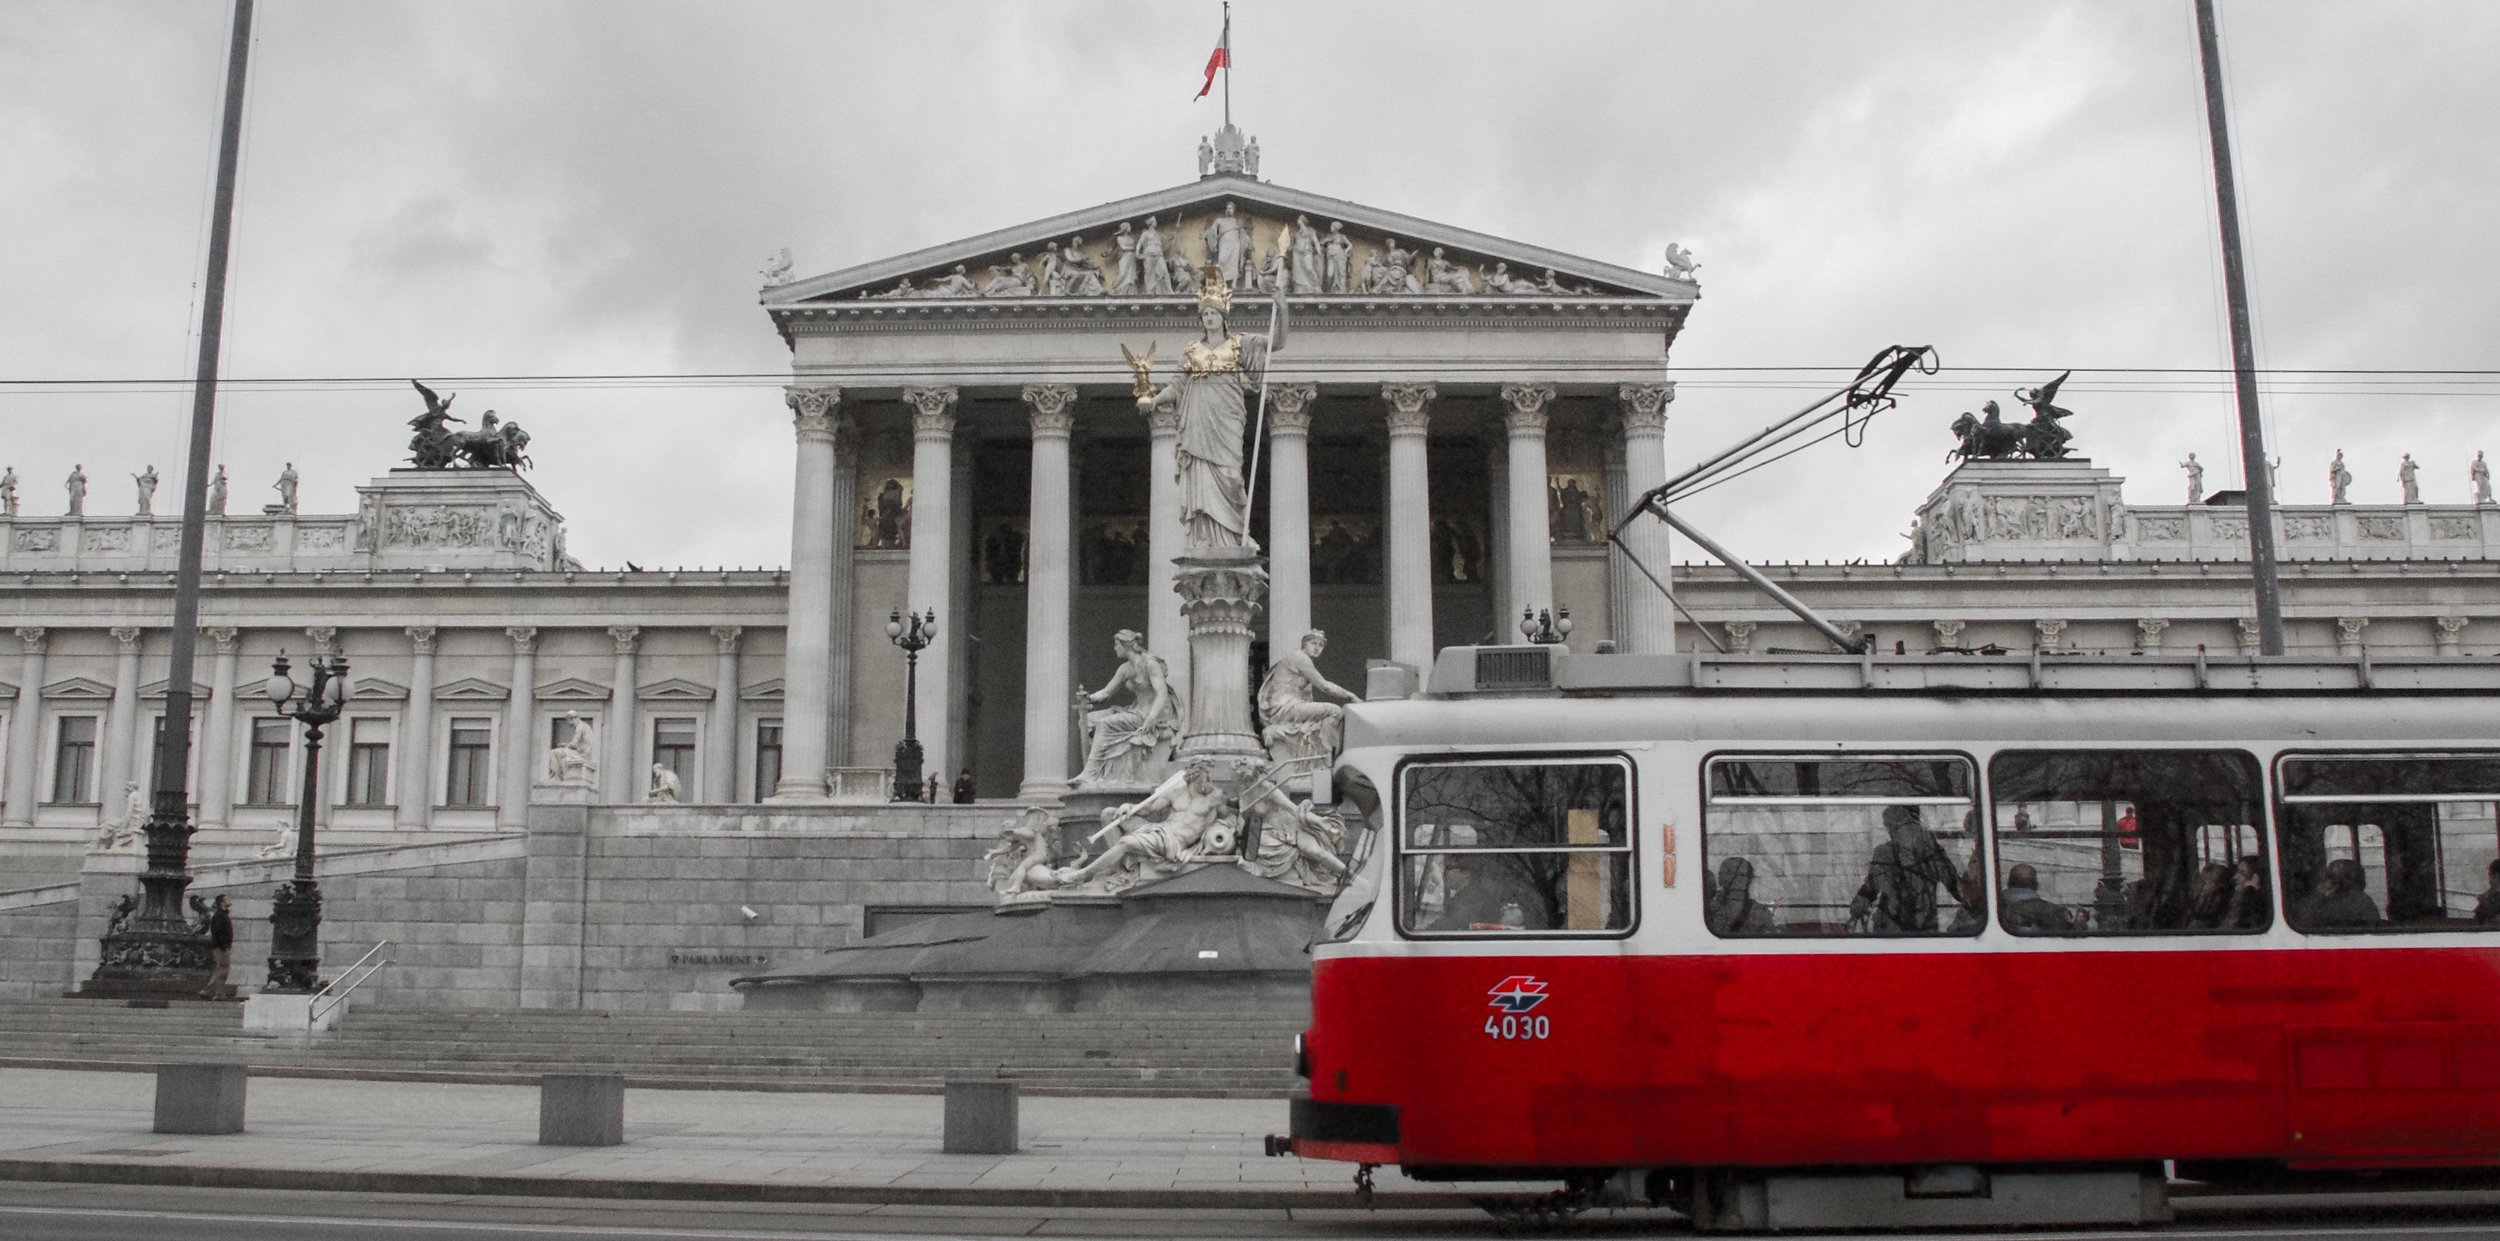 Trolly and Parlament-2.jpg